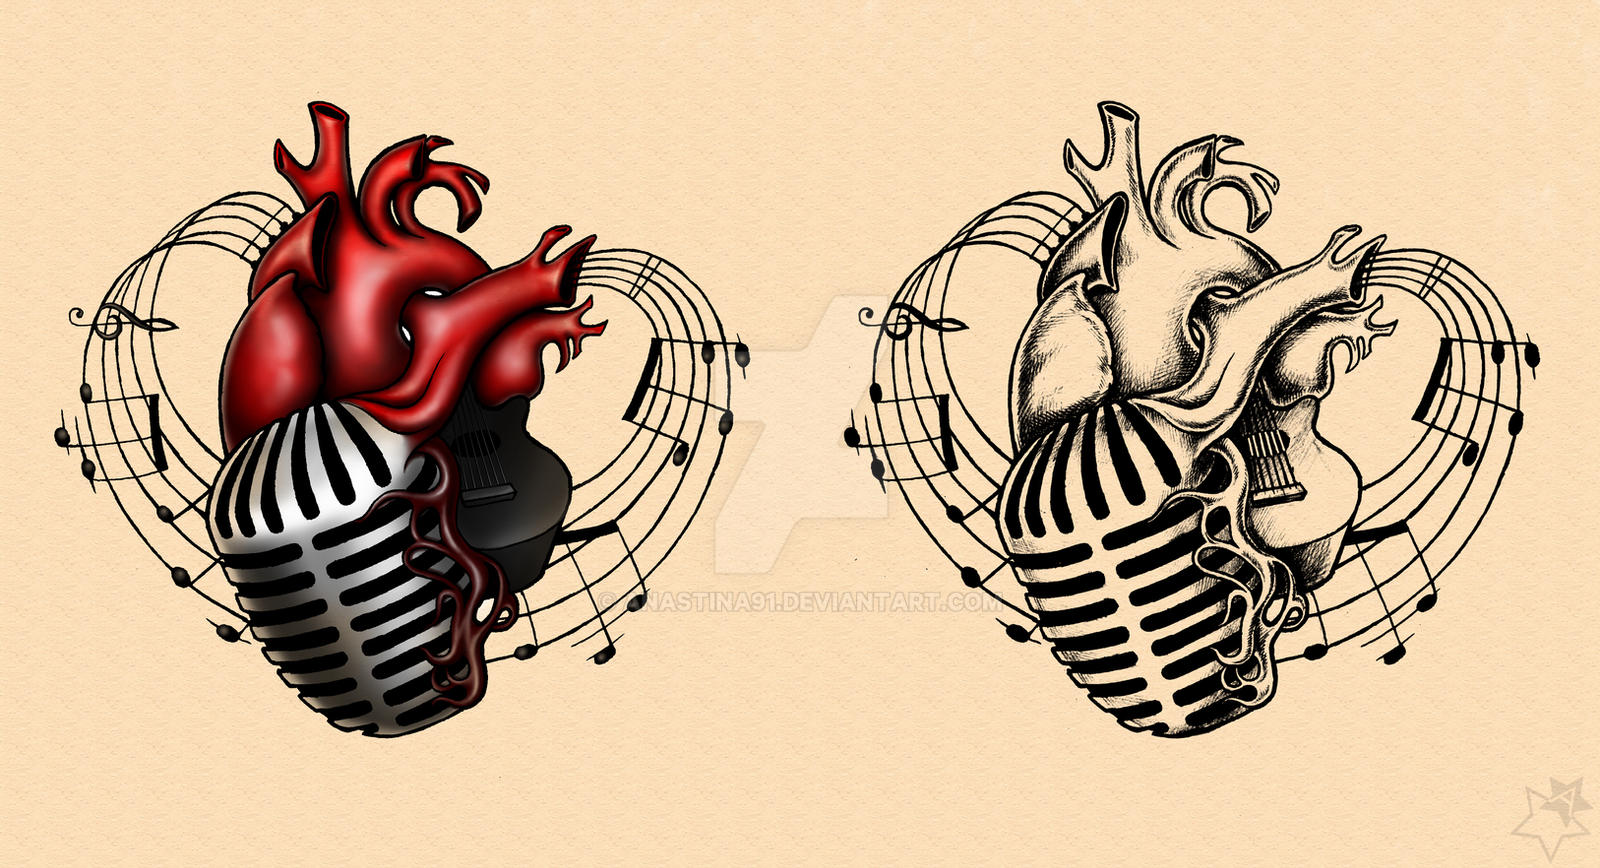 Music Heart Adam Gontier Solo Live 2013 Tattoos By Anastina91 On Deviantart